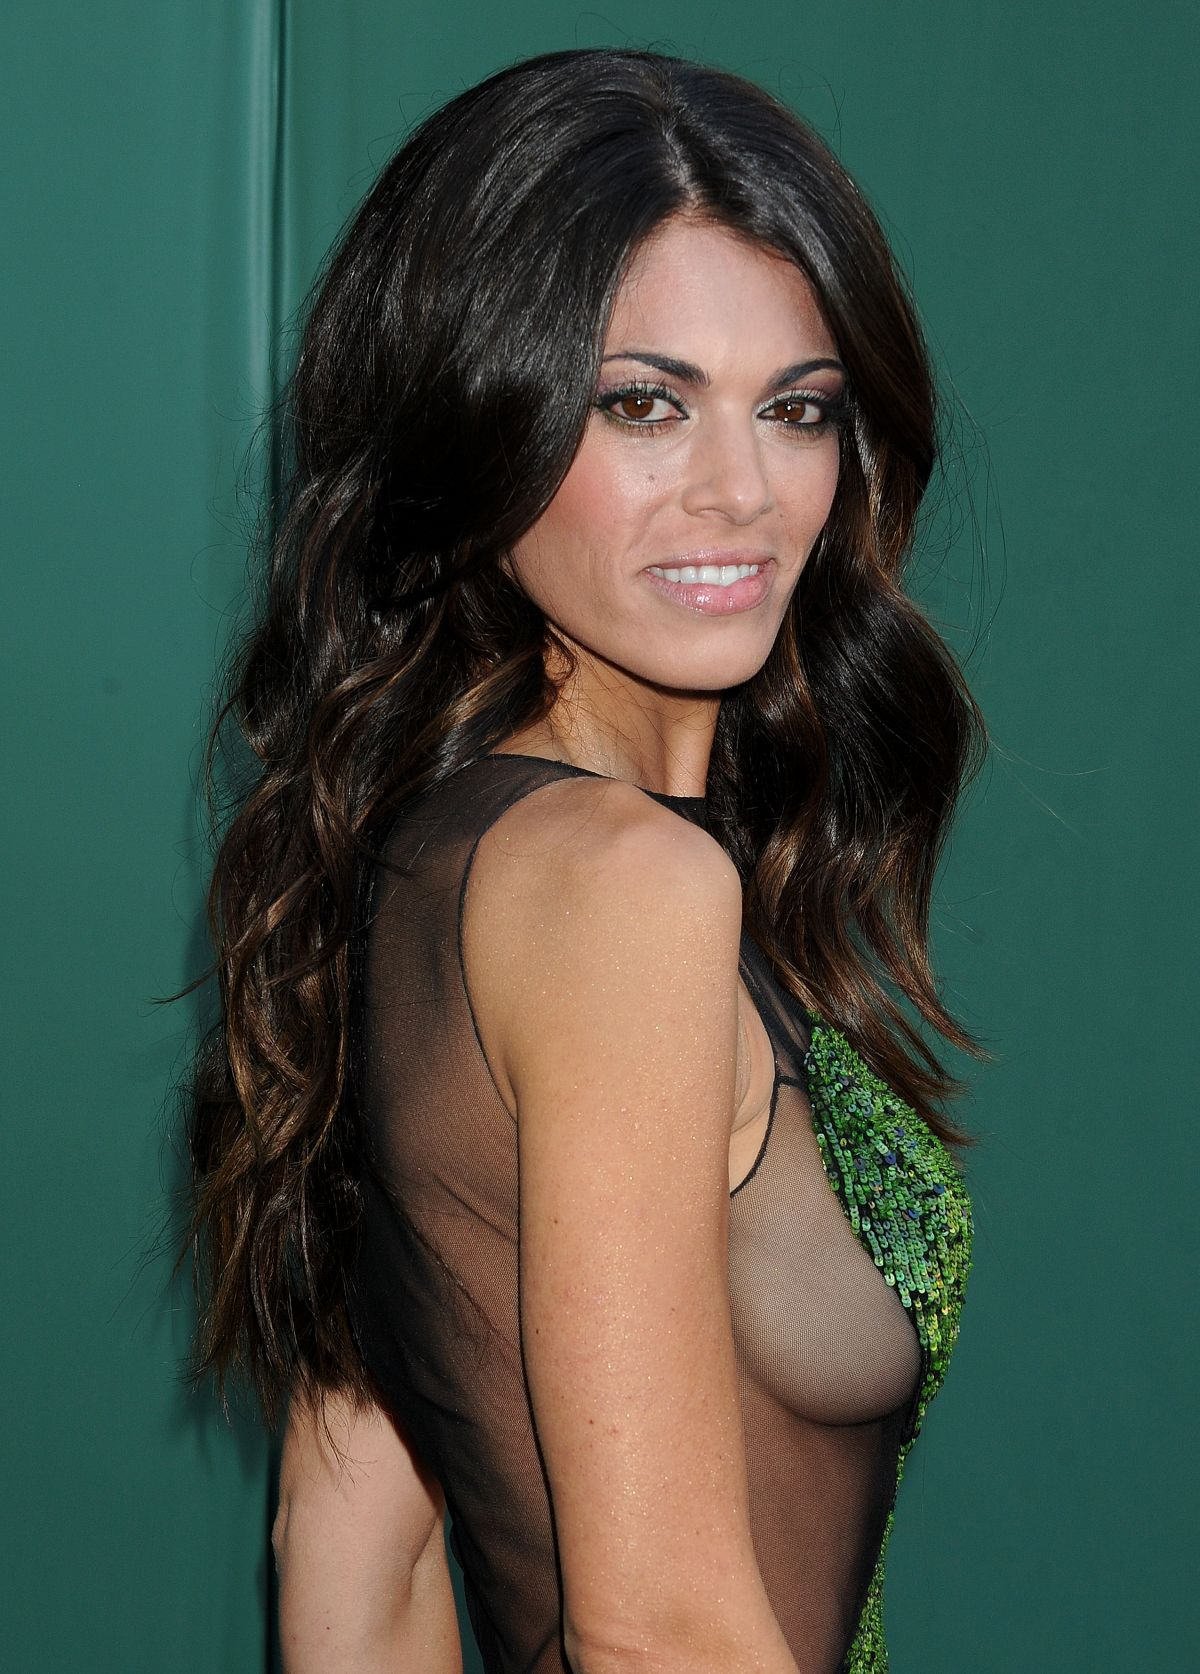 lindsay hartley daughter